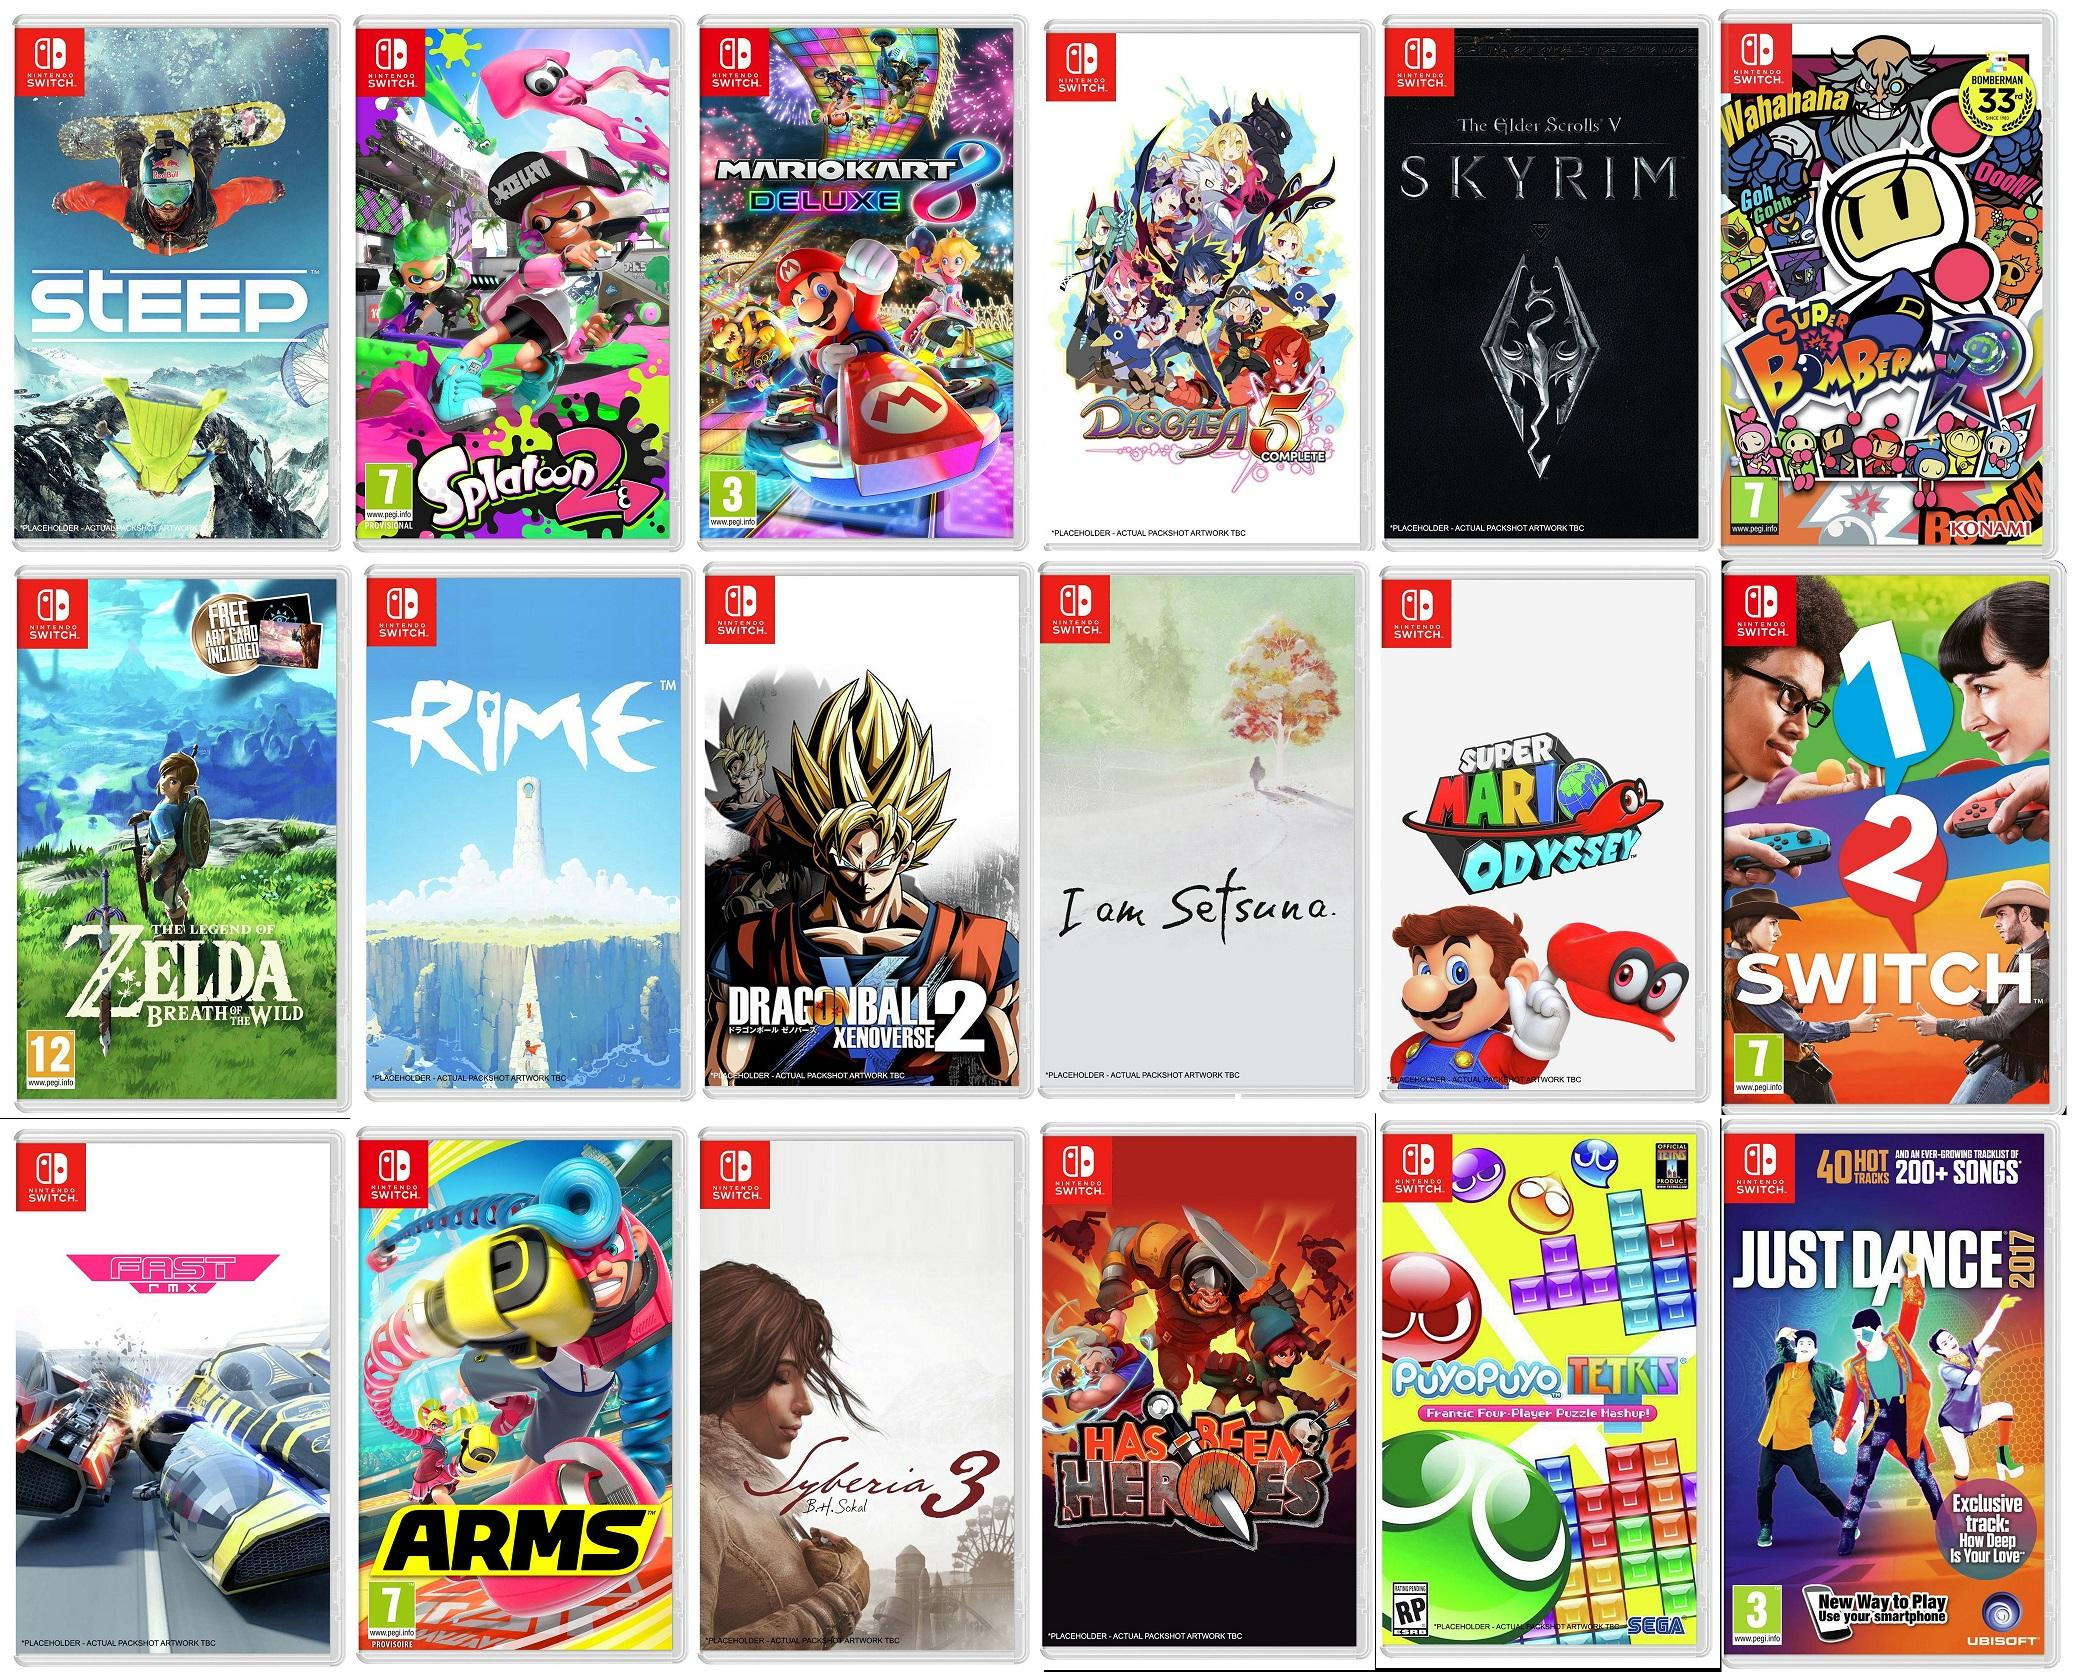 The Best Nintendo Switch Games for 2020 | PCMag